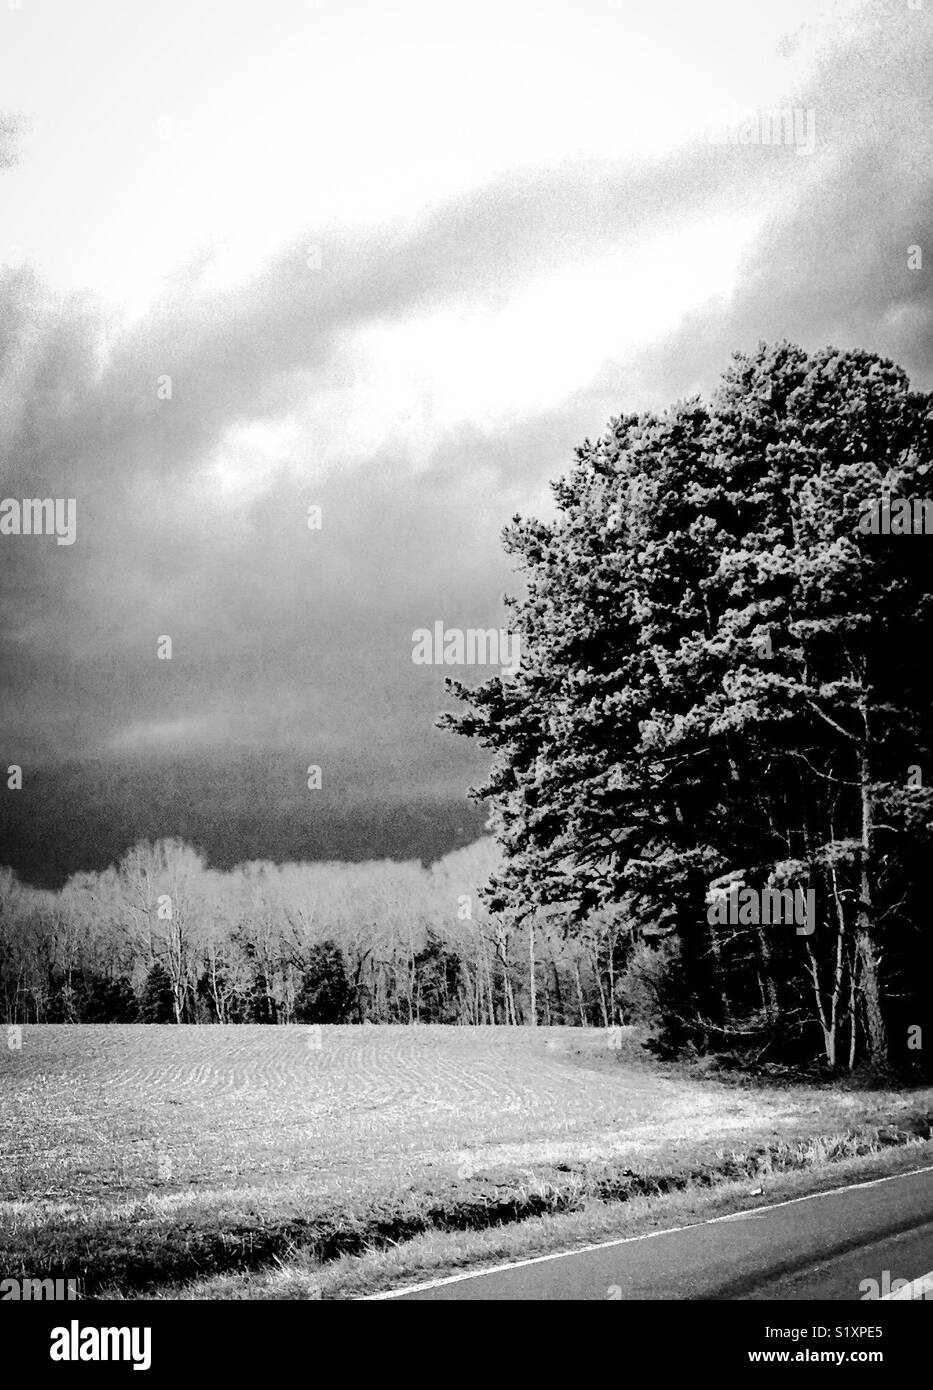 Black and white photo of overcast sky, line of trees, and field- February in North Carolina - Stock Image